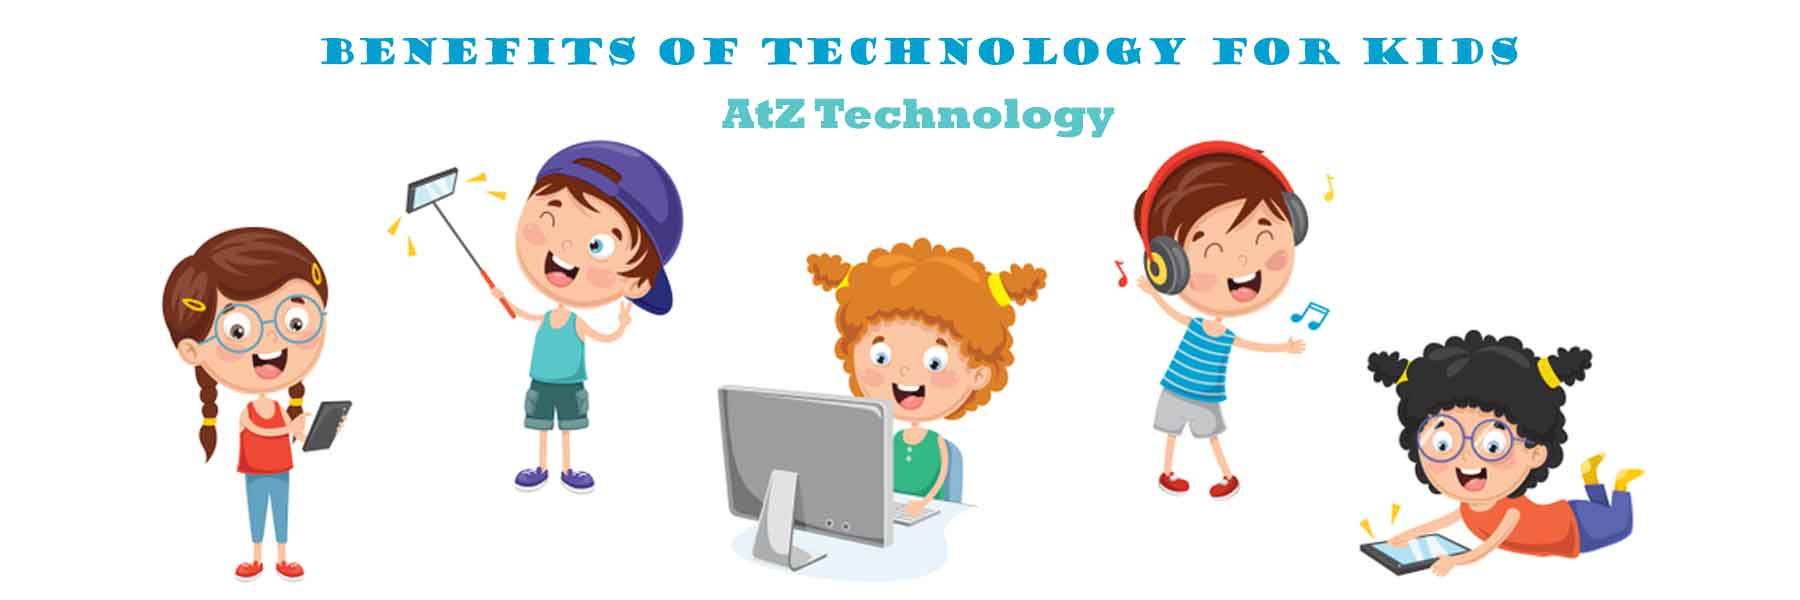 Benefits of Technology for Kids